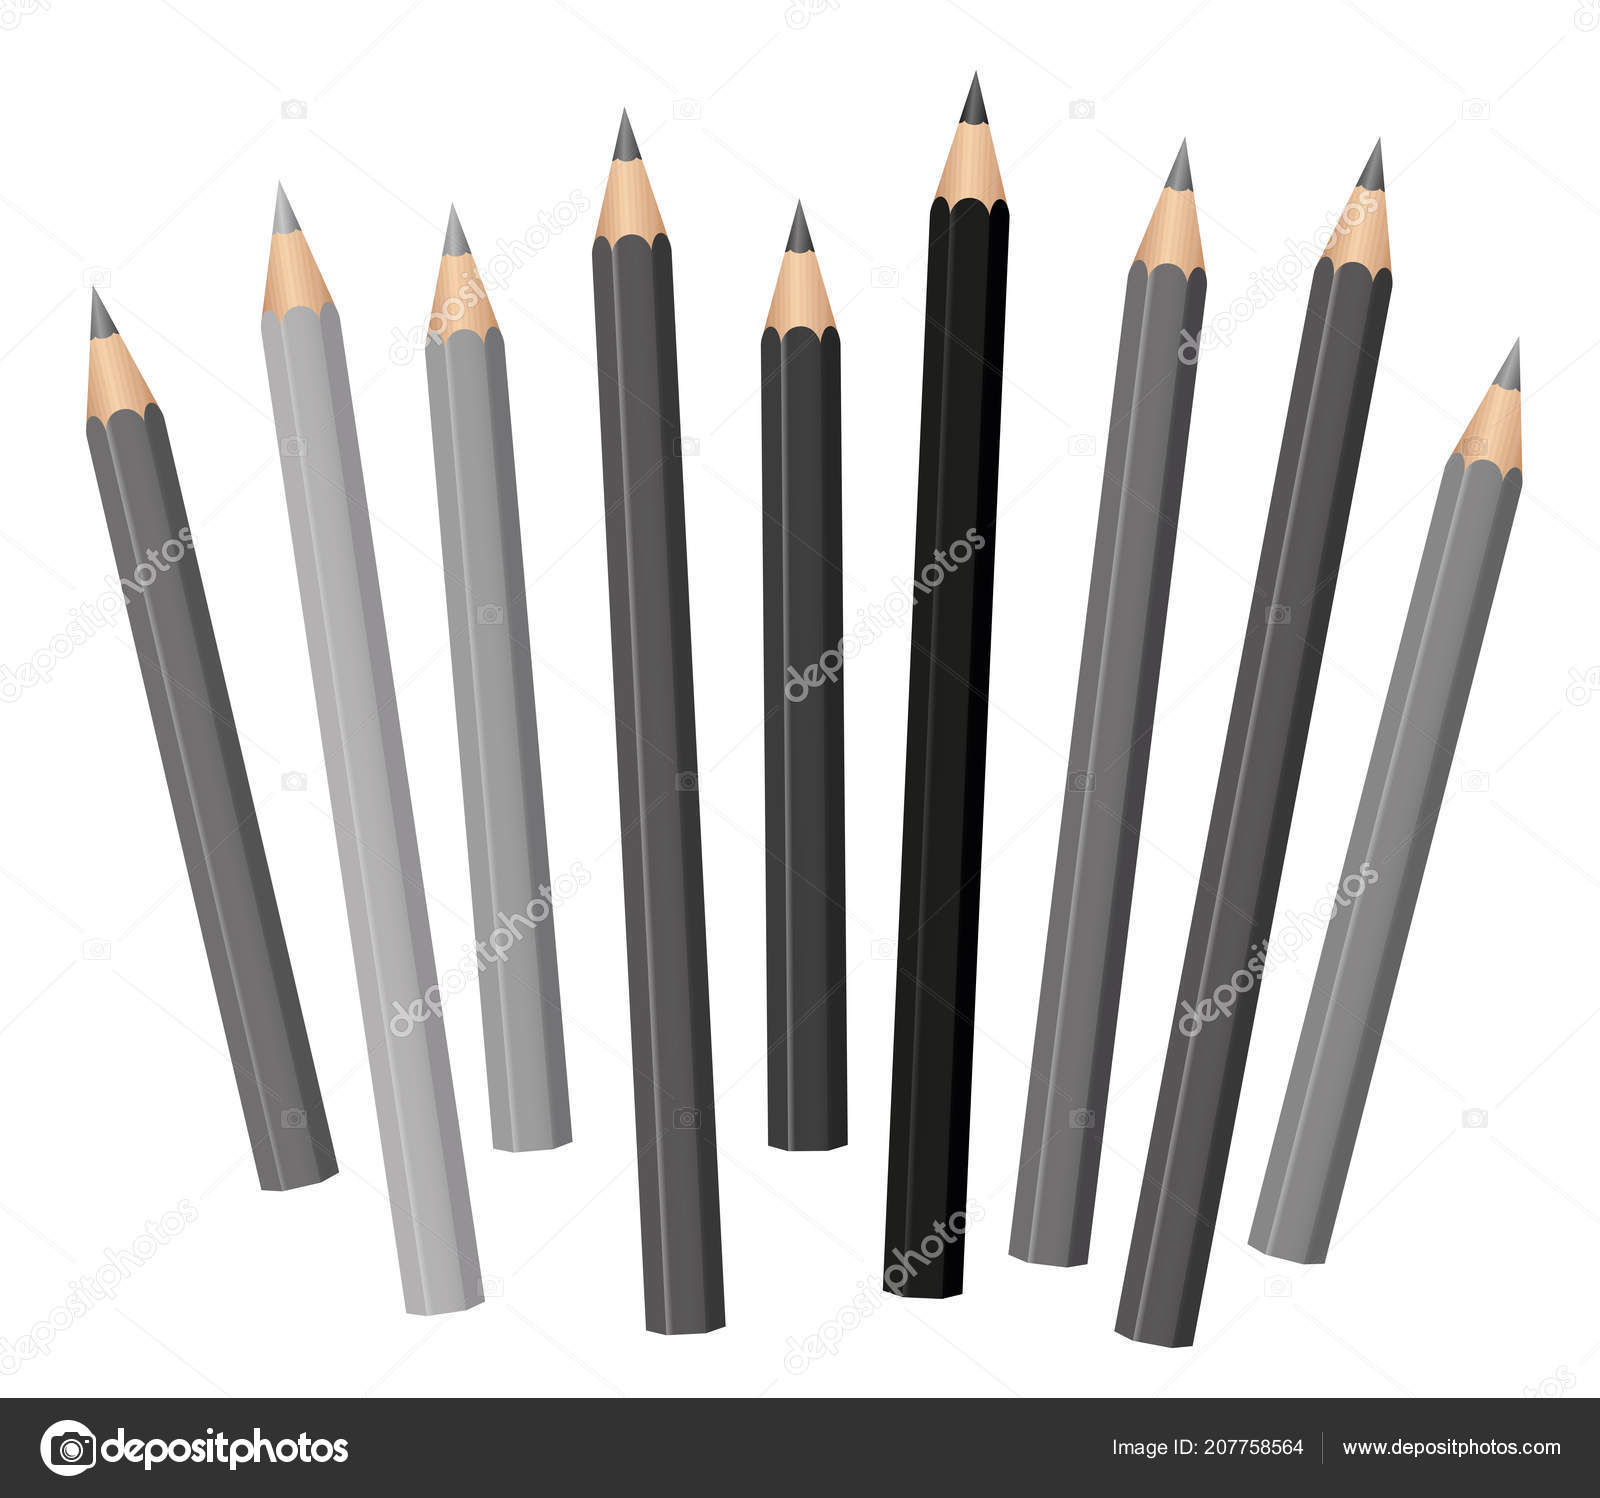 Gray pencils different shades lengths loosely arranged gray tones